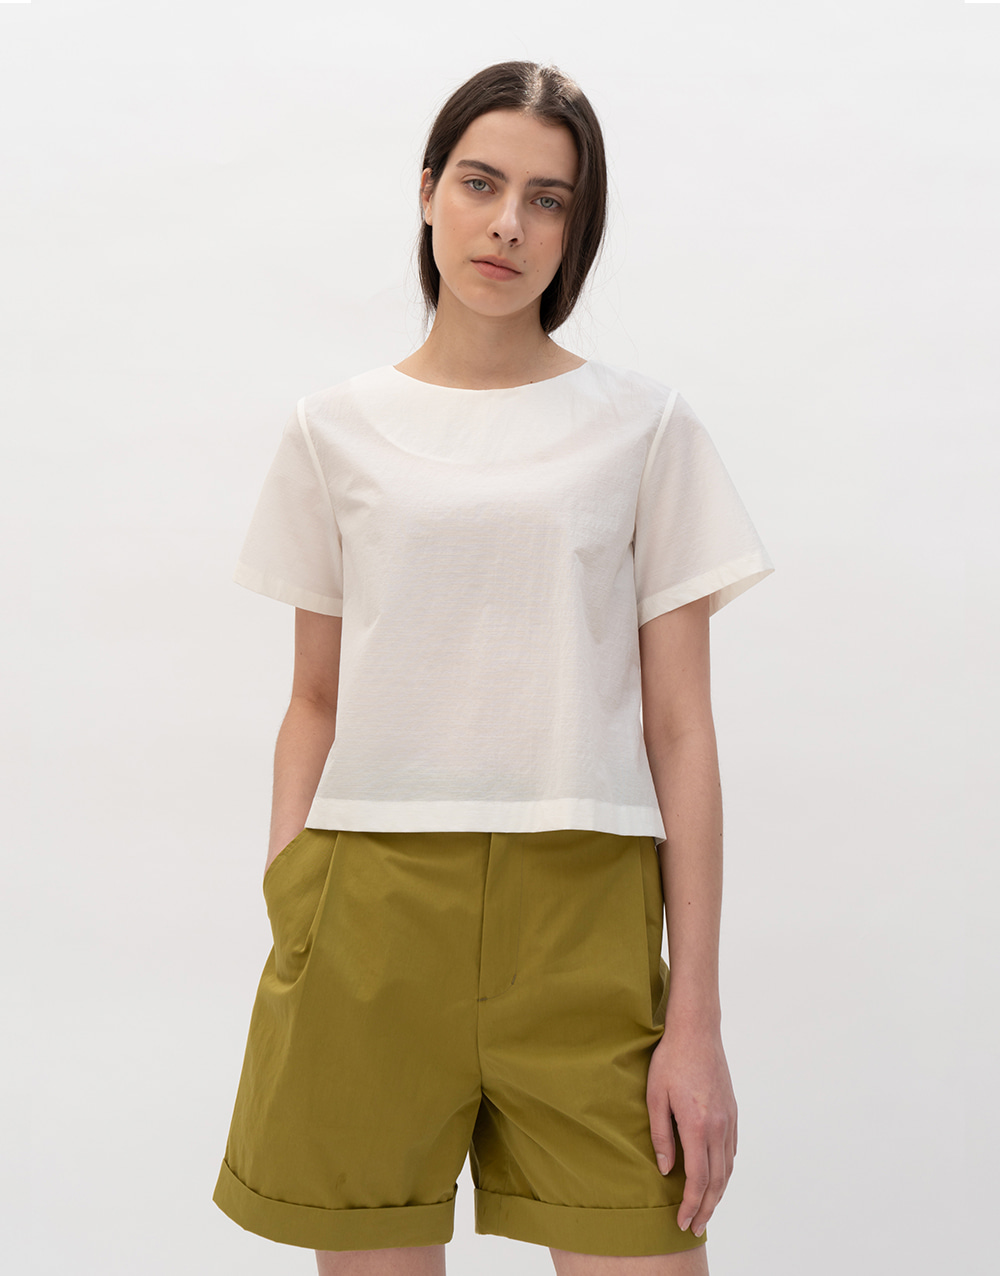 GBH APPAREL ADULT   Simple Blouse WHITE